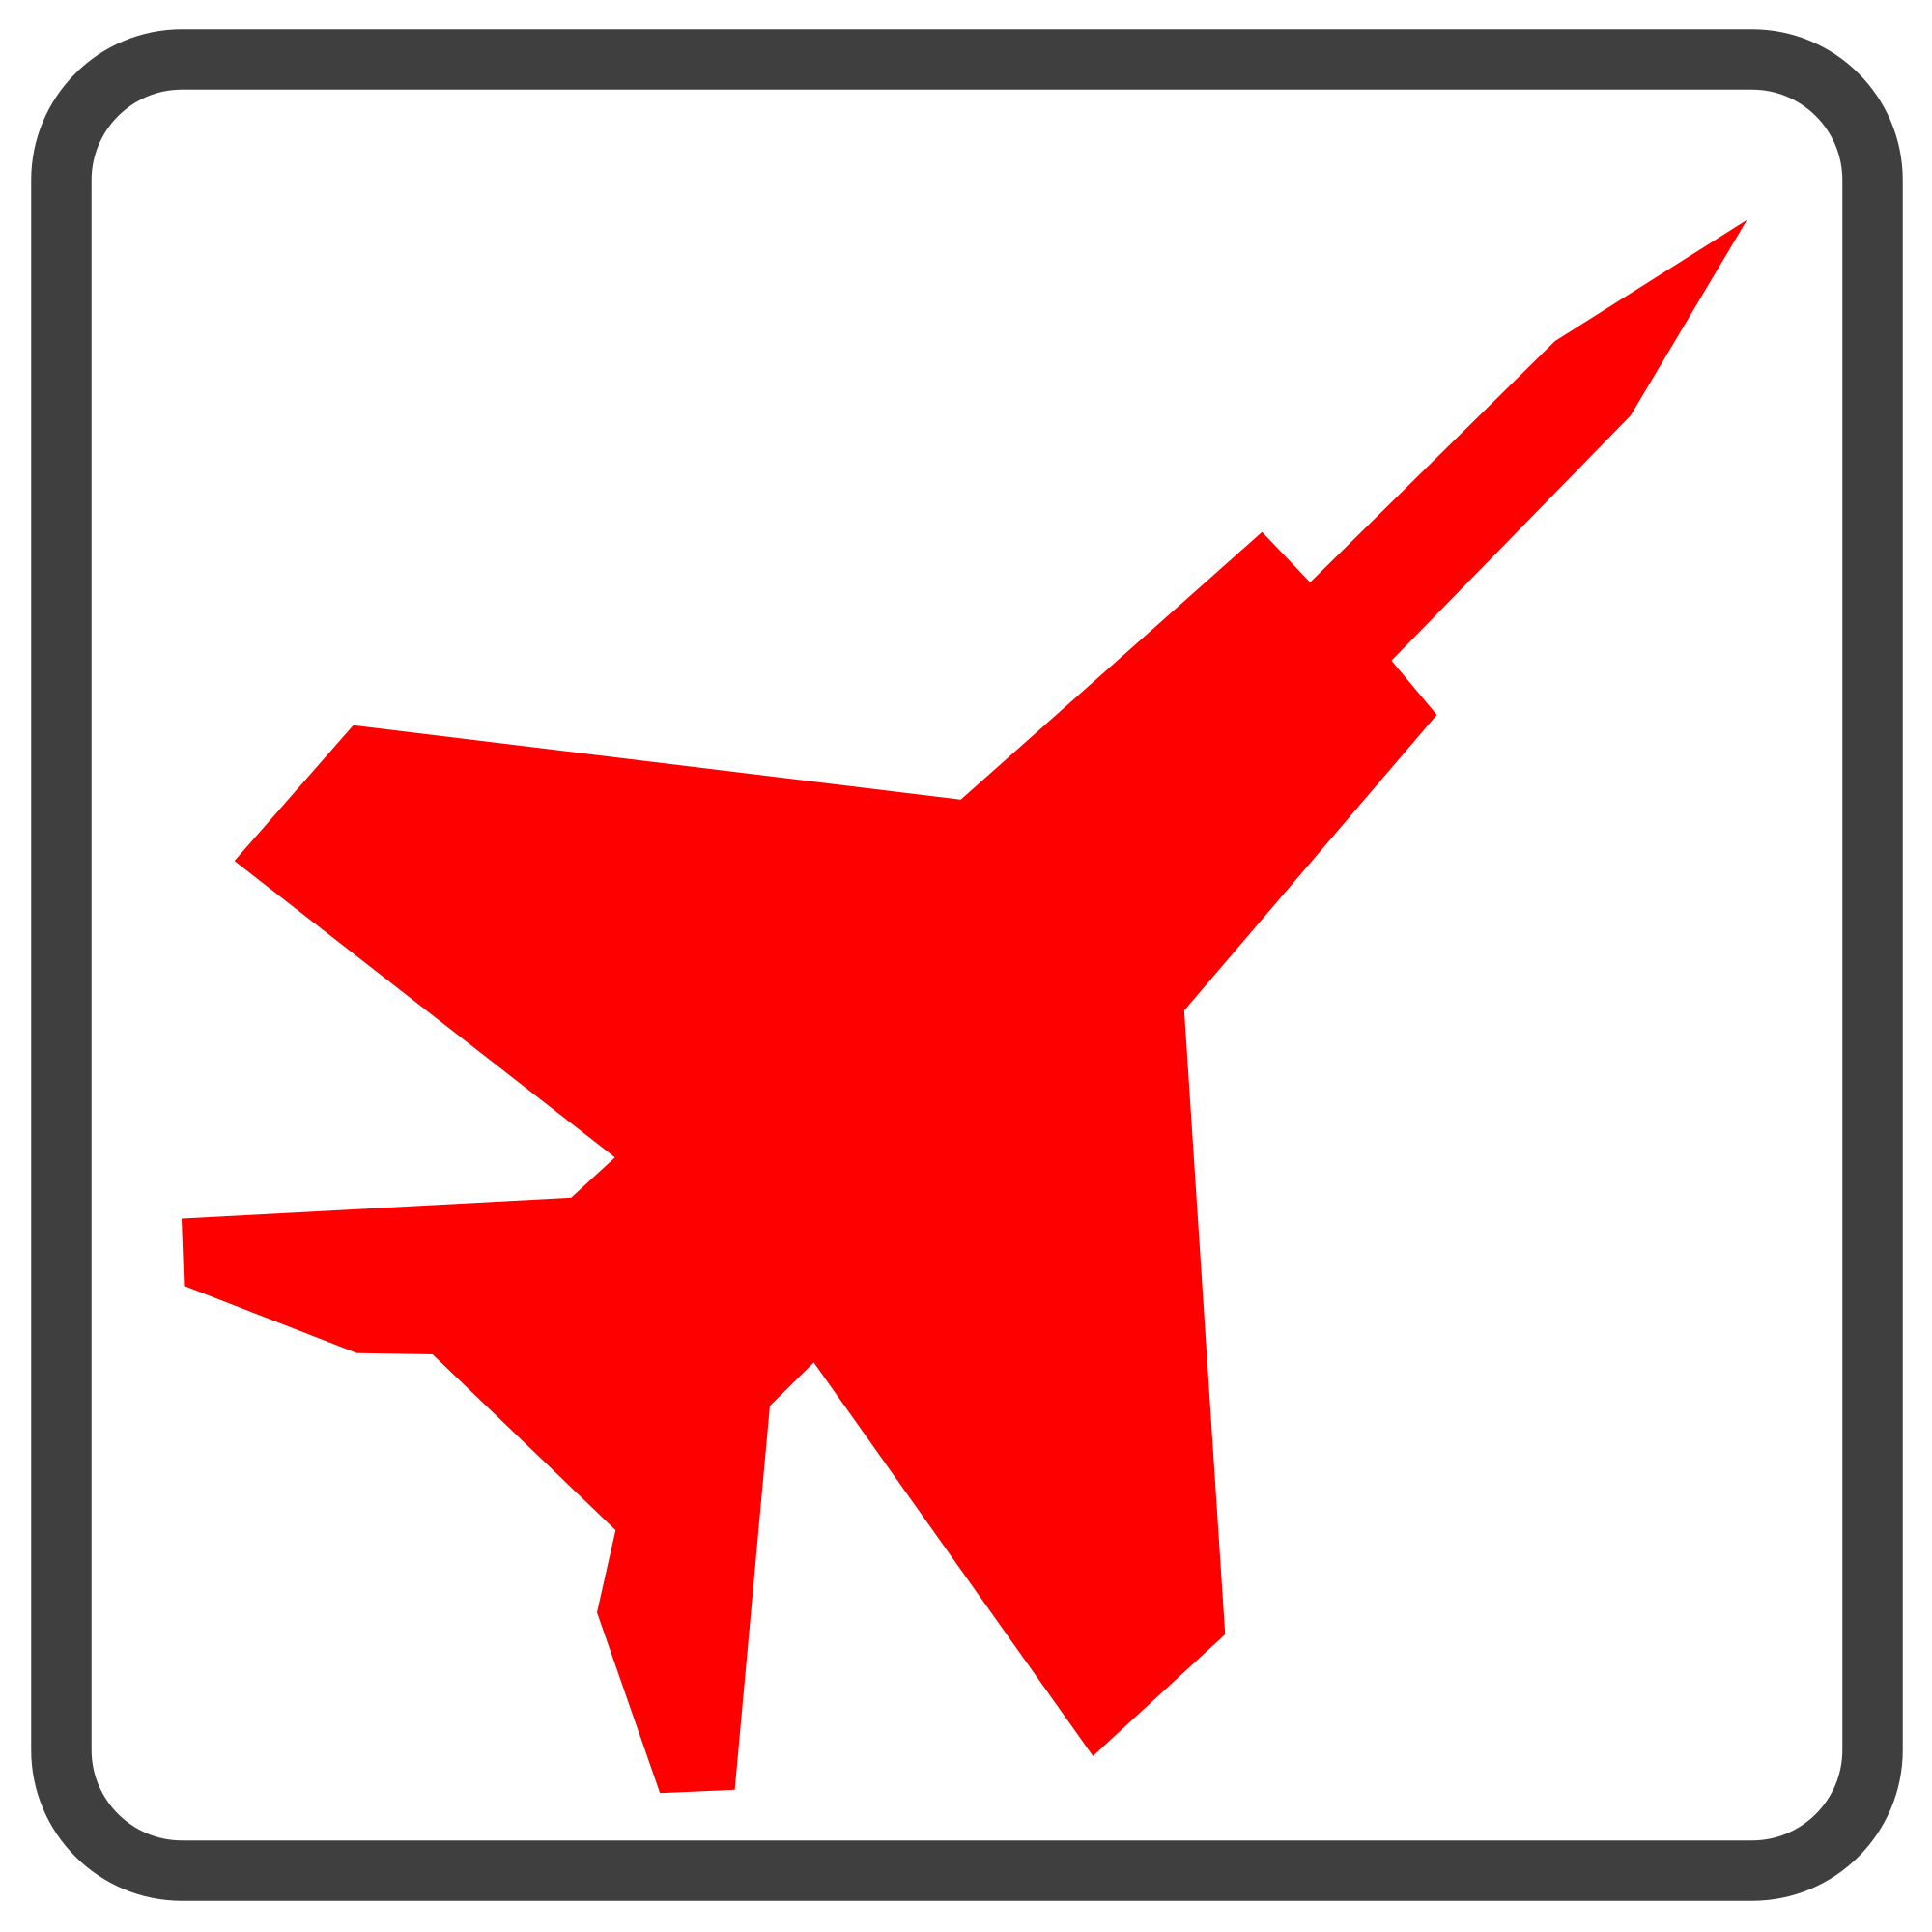 Jet clipart military jet. File fighter red icon